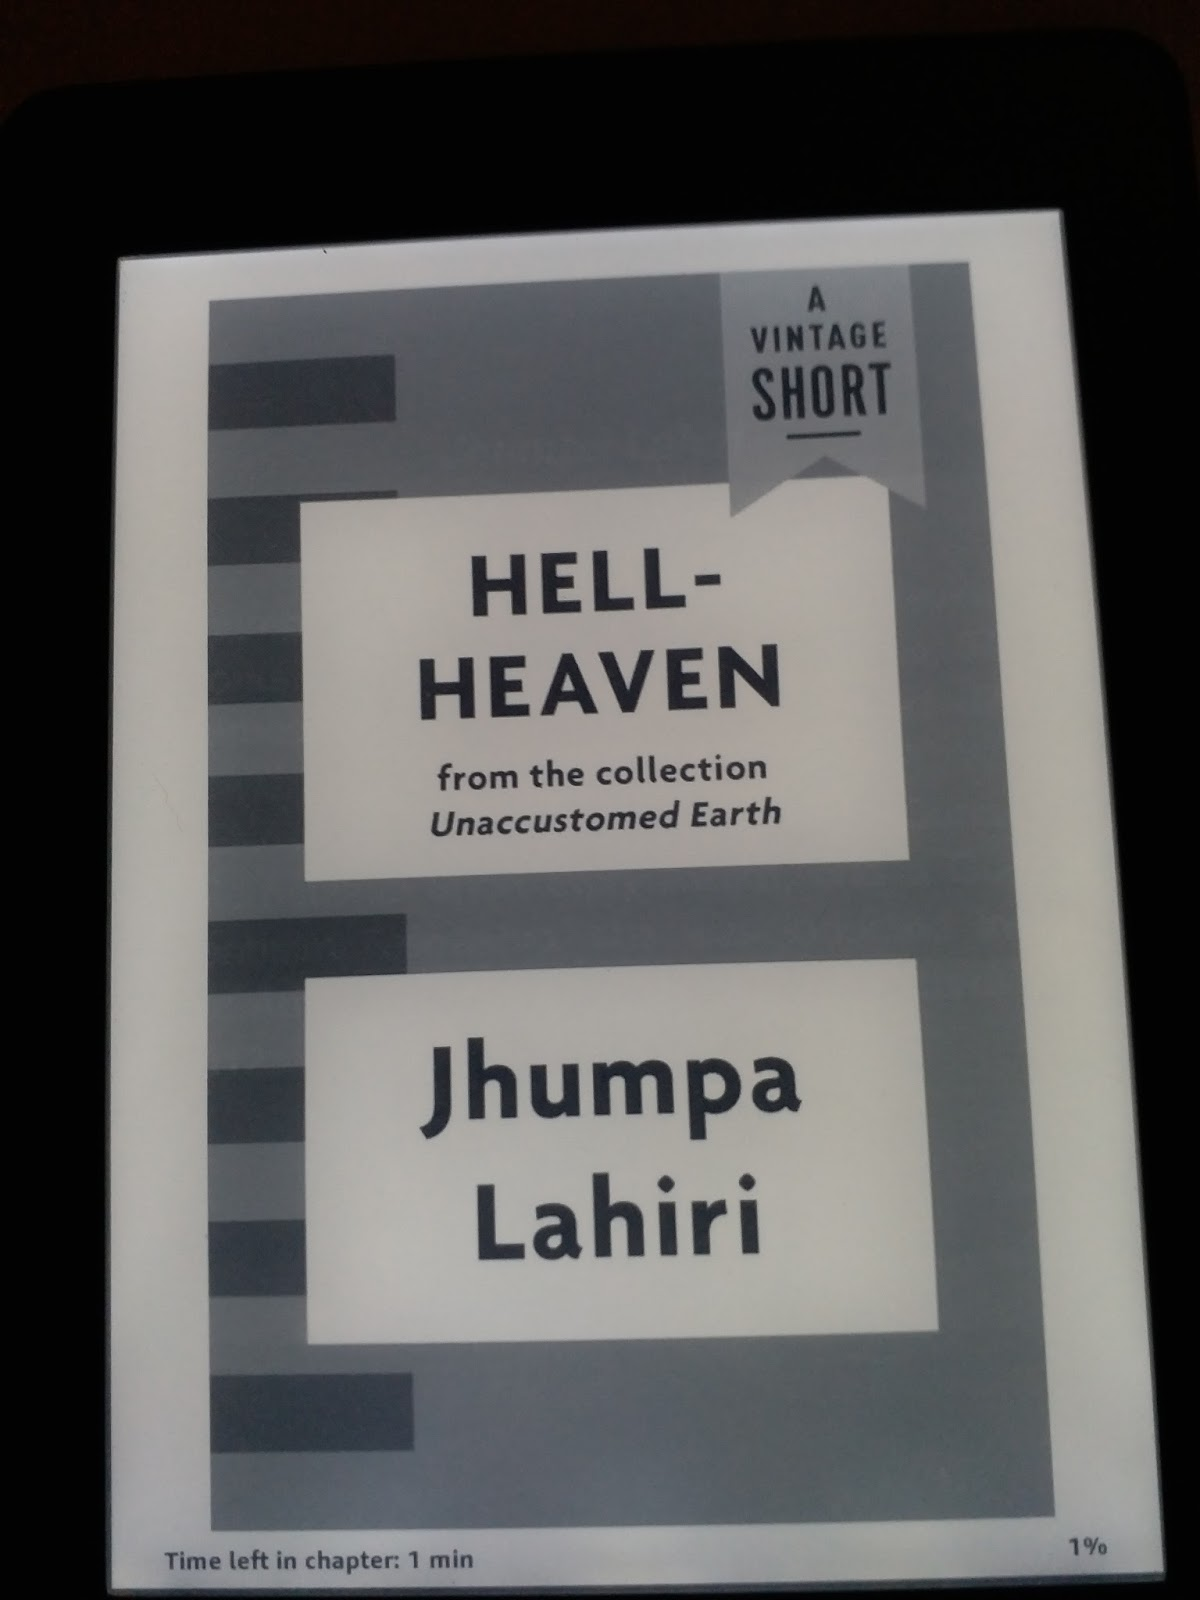 """analysis of conflict in jhumpa lahiri s hell heaven Clothes as a marker of cultural identity in jhumpa lahiri's """"hell-heaven"""" for the analysis of the cultural generational conflict and tension seem to be."""